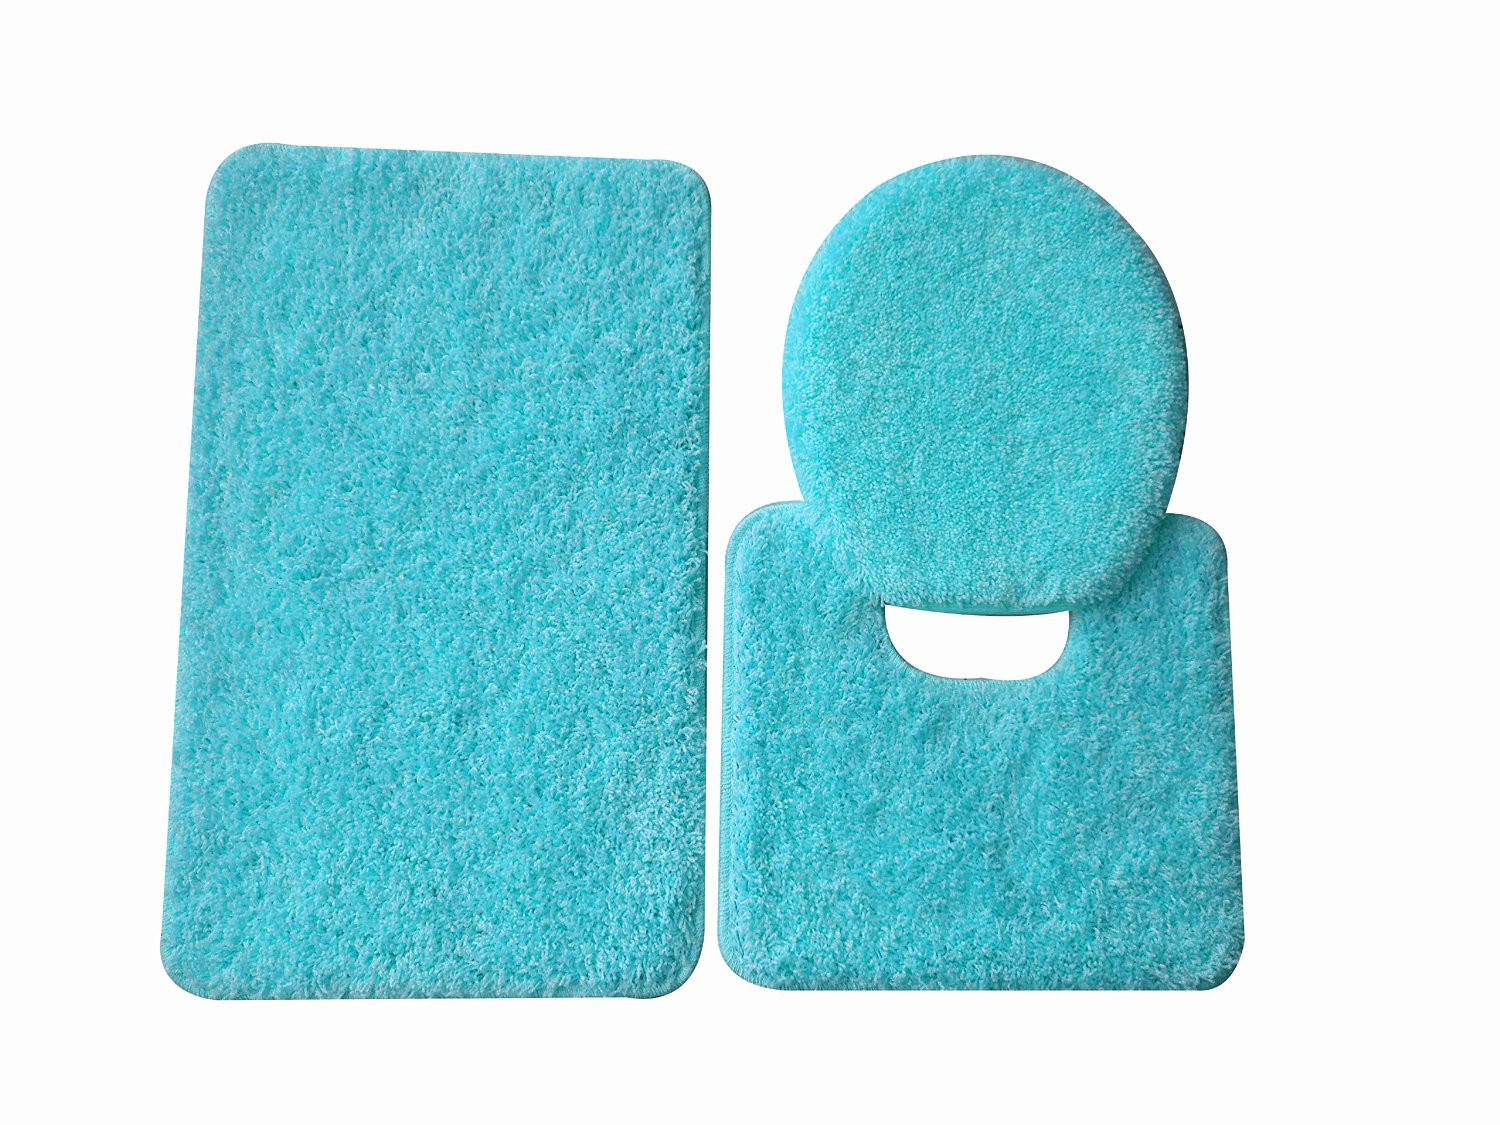 3 piece bathroom rug set from naturally home